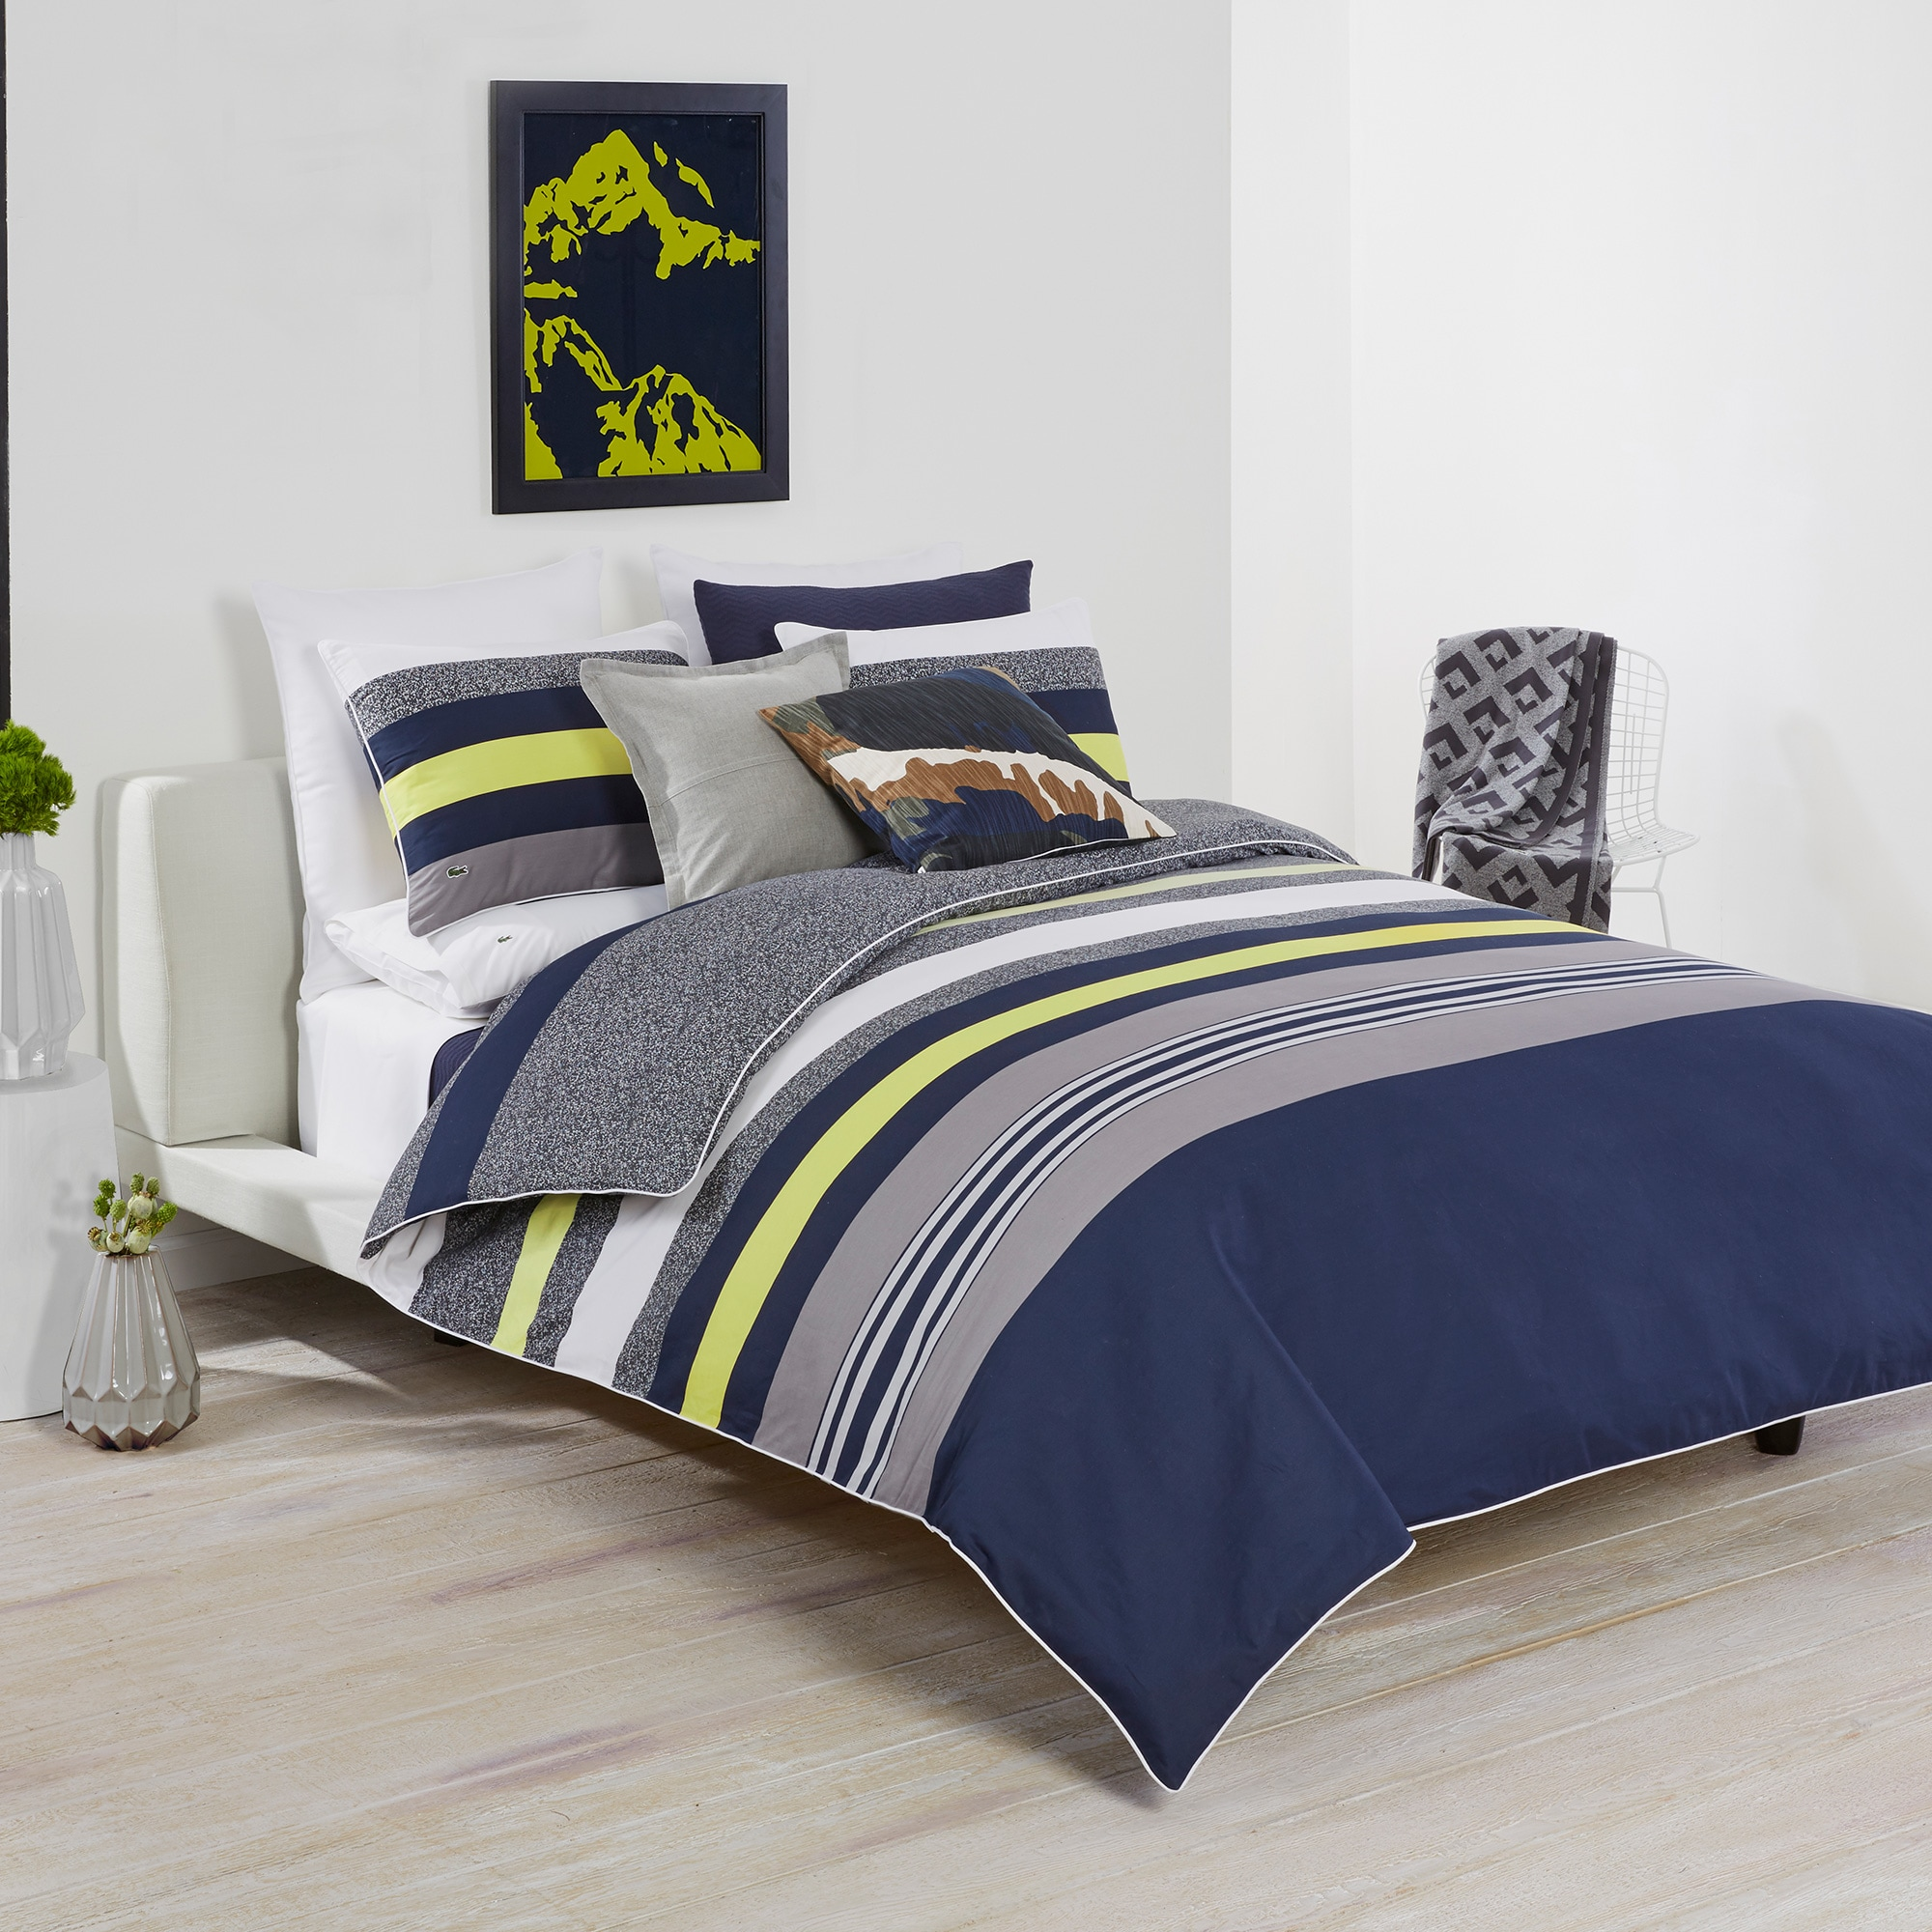 org blue lacoste titanicinternational auckland sets duvet cover and comforter set canada